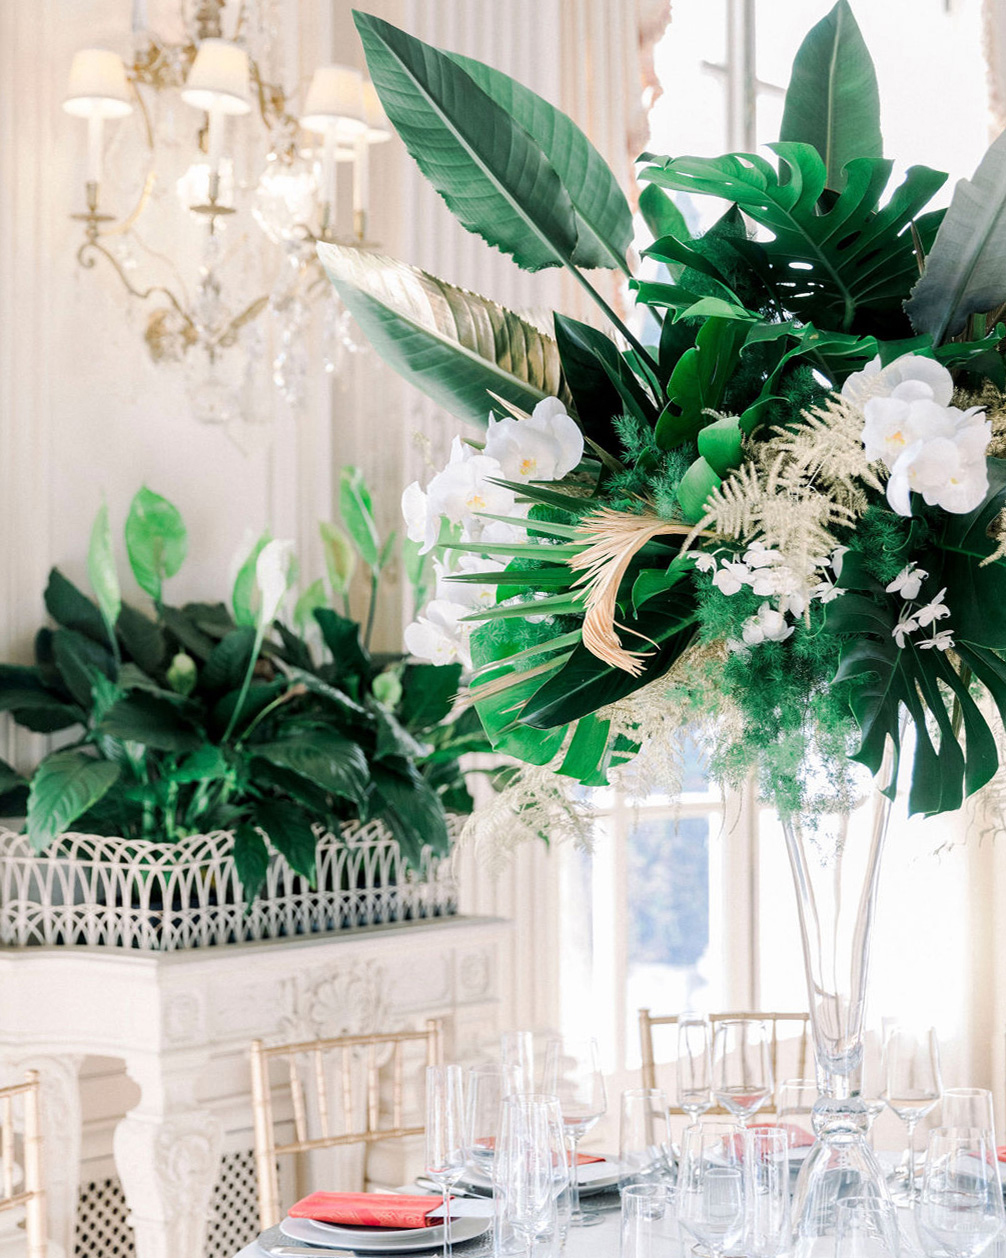 dalila elliot tropical green wedding centerpiece